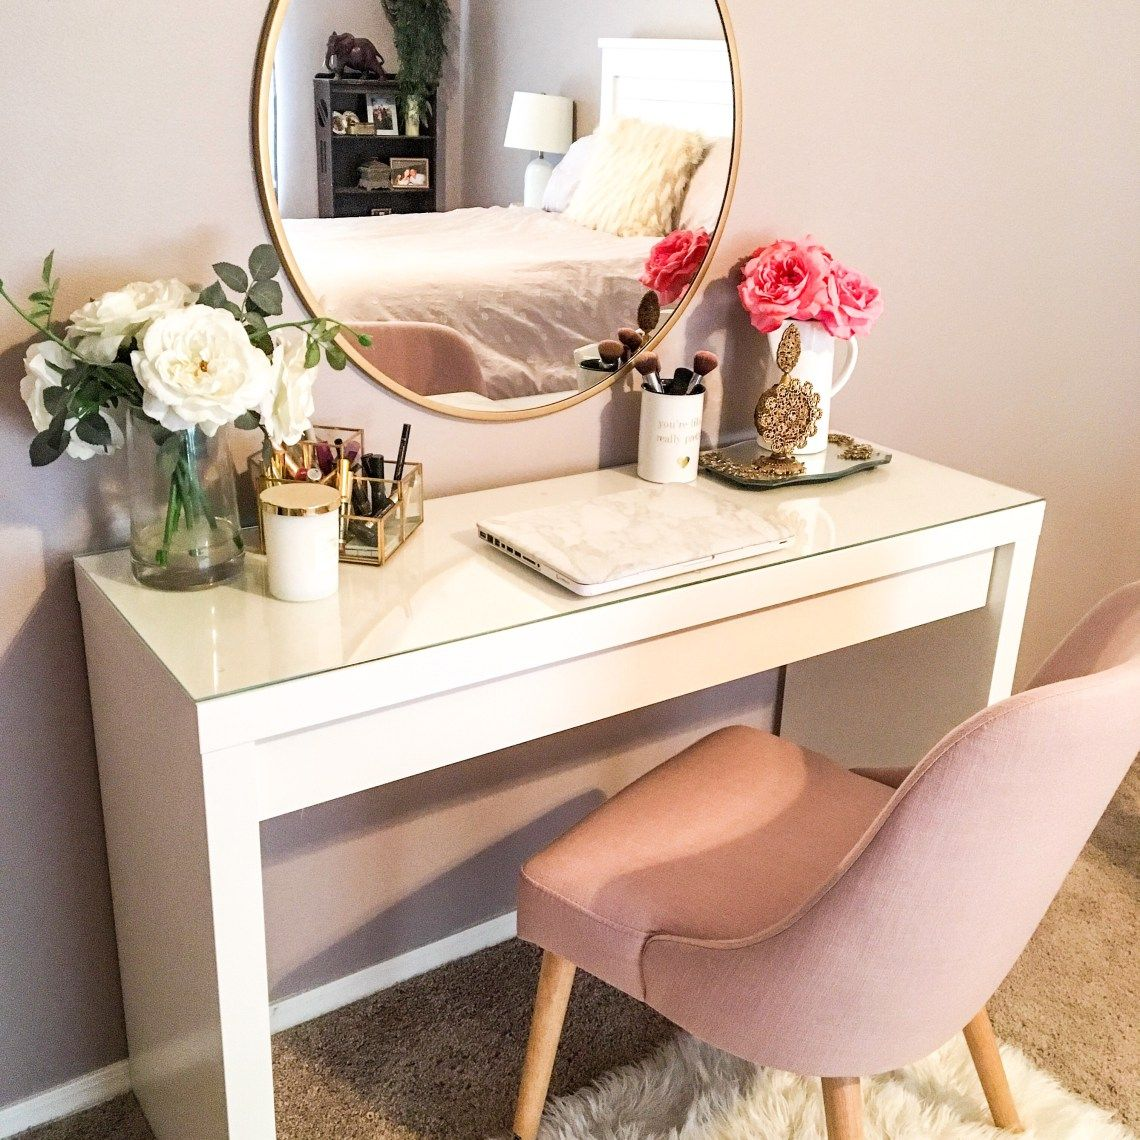 How To Style The Ikea Malm Vanity Table Dorothy Pro Blog Dressing Room Decor Bedroom Dressing Table White Dining Room Decor